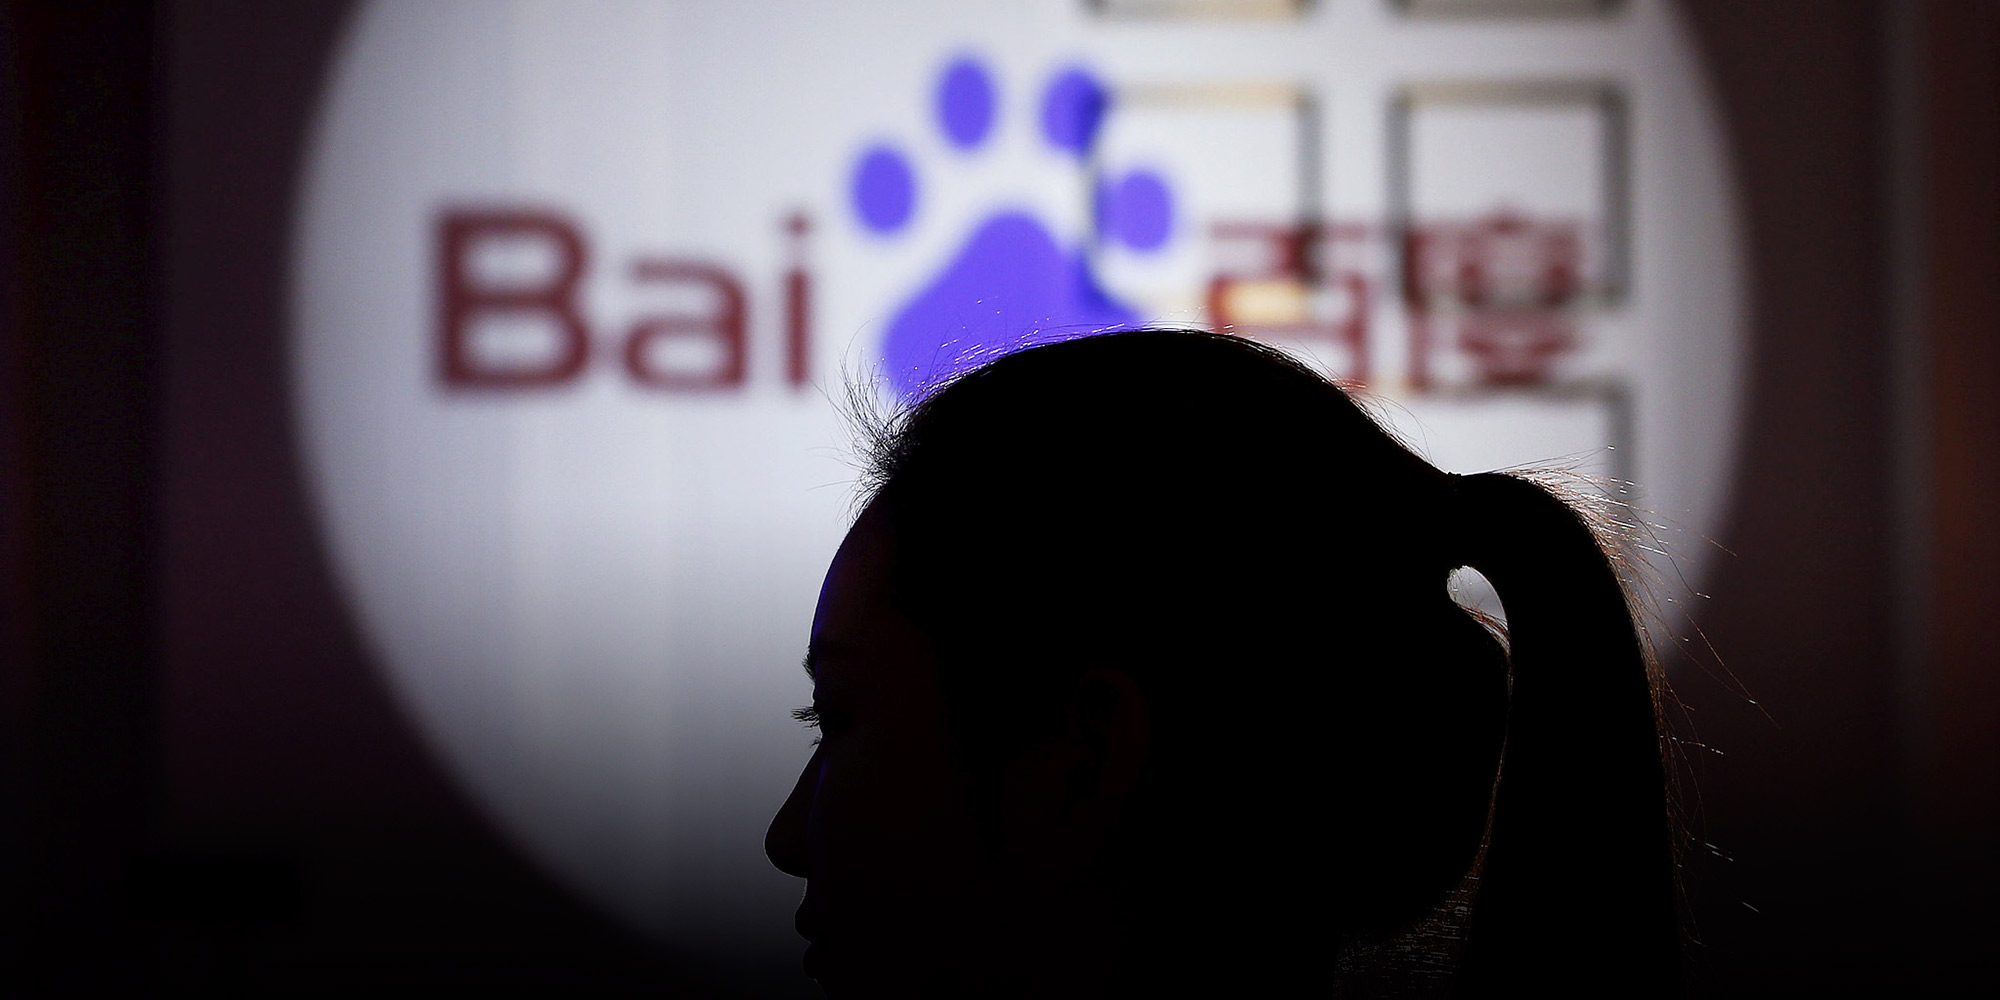 How Baidu Learned to Stop Worrying and Love the Walled Garden